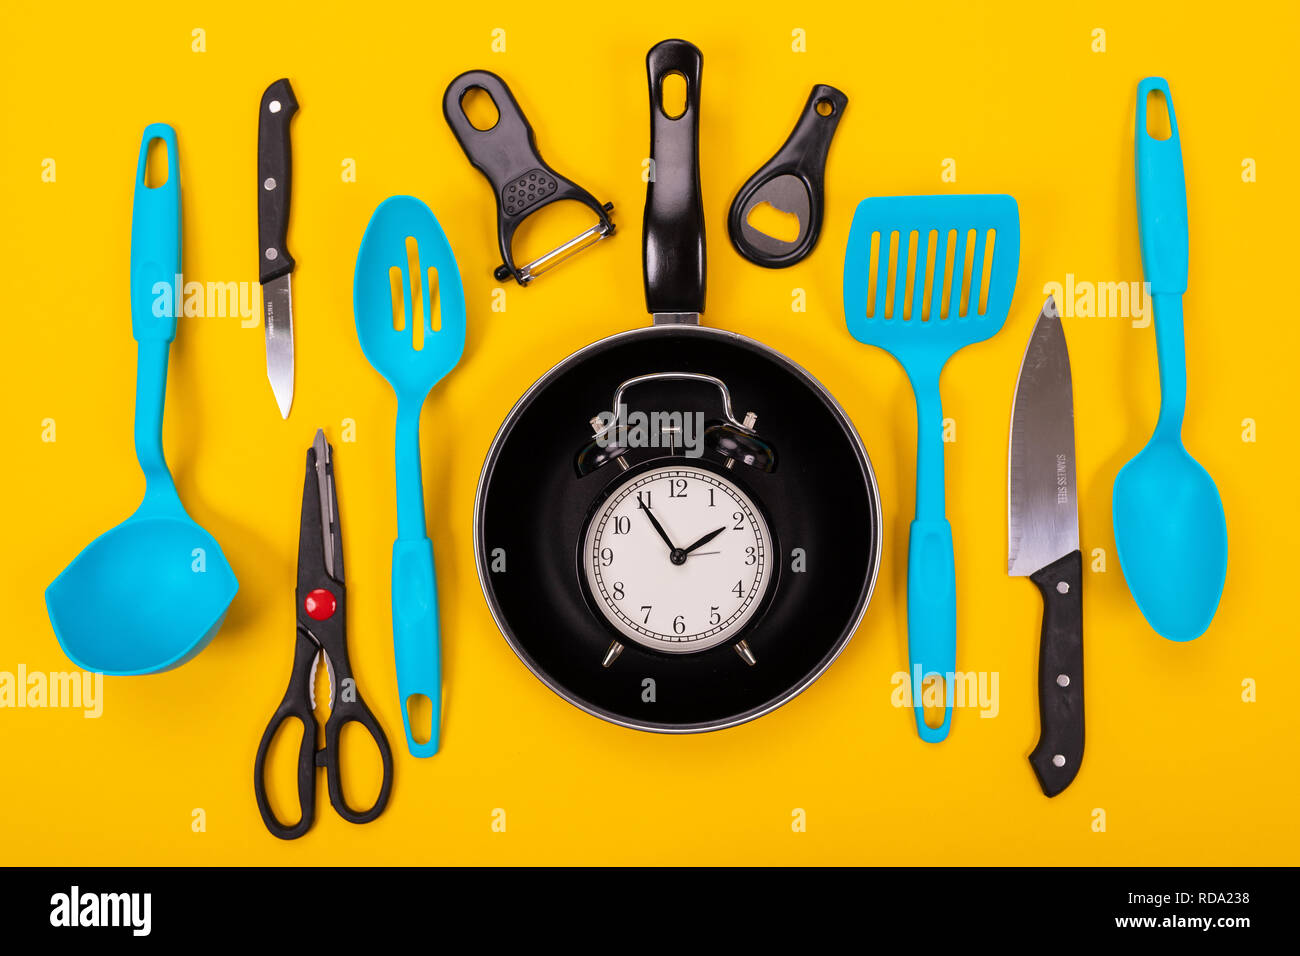 Close up portrait of frying pan with set of kitchen utensils on yellow background Stock Photo